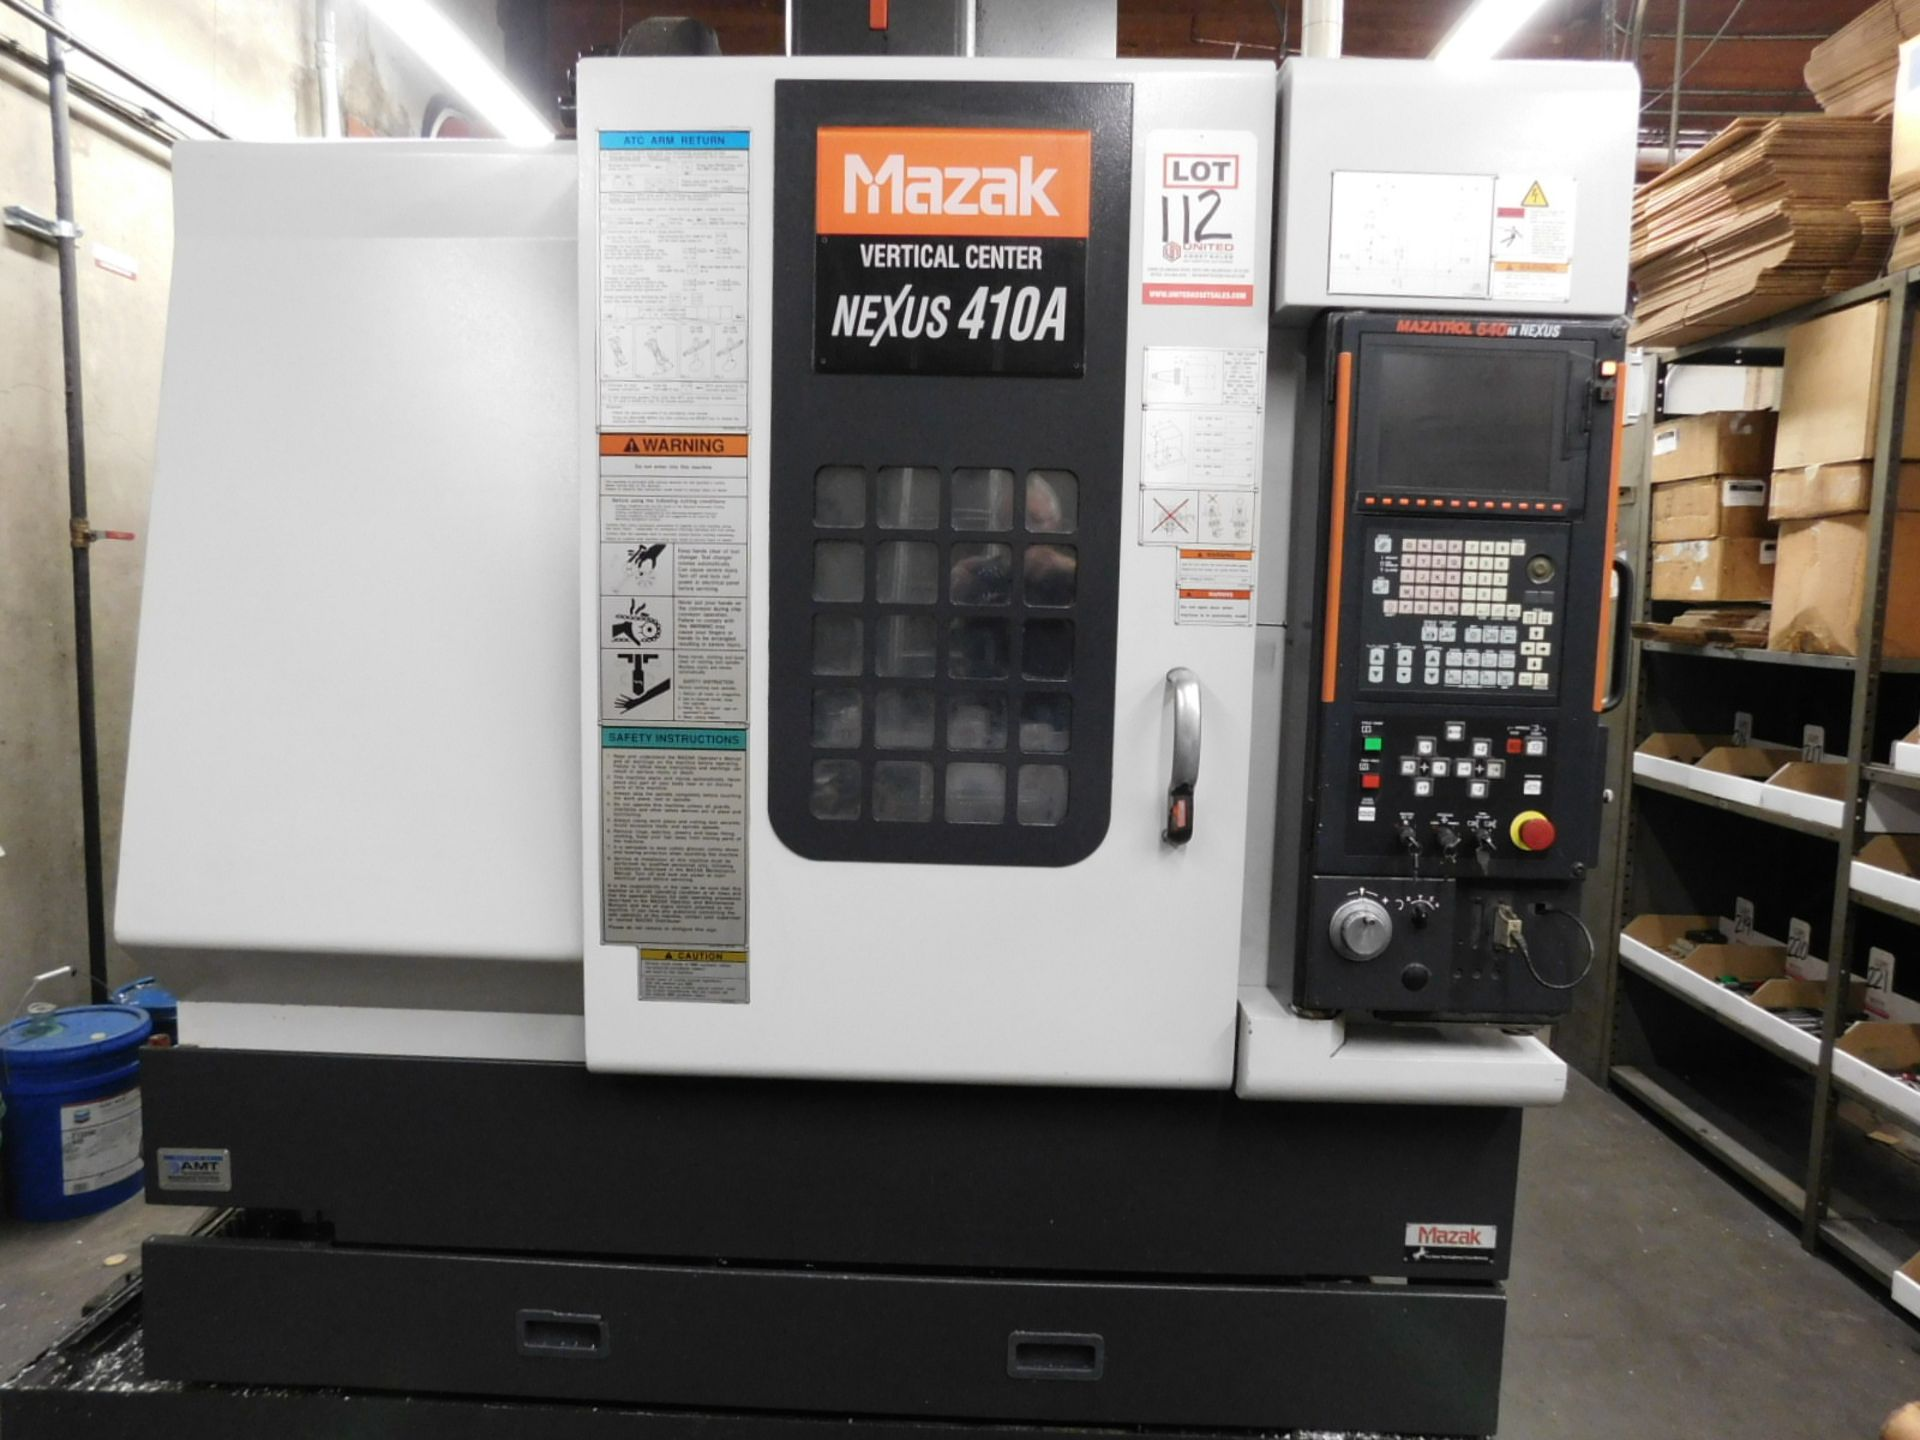 2005 MAZAK NEXUS VCN 410A CNC VERTICAL MACHINING CENTER, MAZATROL FUSION 640M NEXUS CNC CONTROL, XYZ - Image 15 of 15